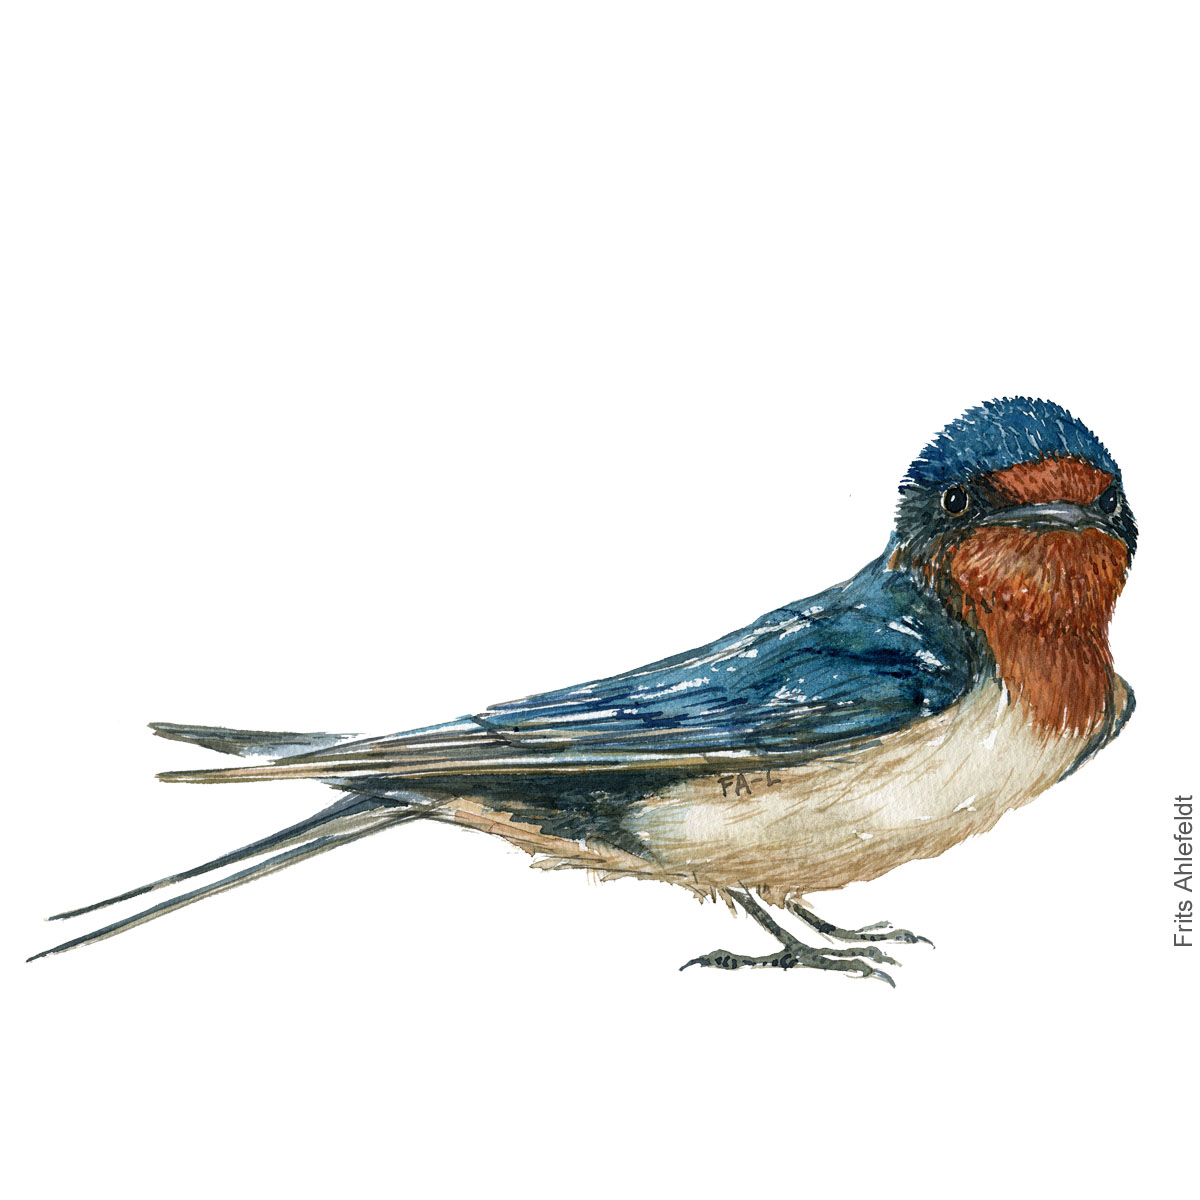 Landsvale - Barn swallow - Bird painting in watercolor by Frits Ahlefeldt - Fugle akvarel